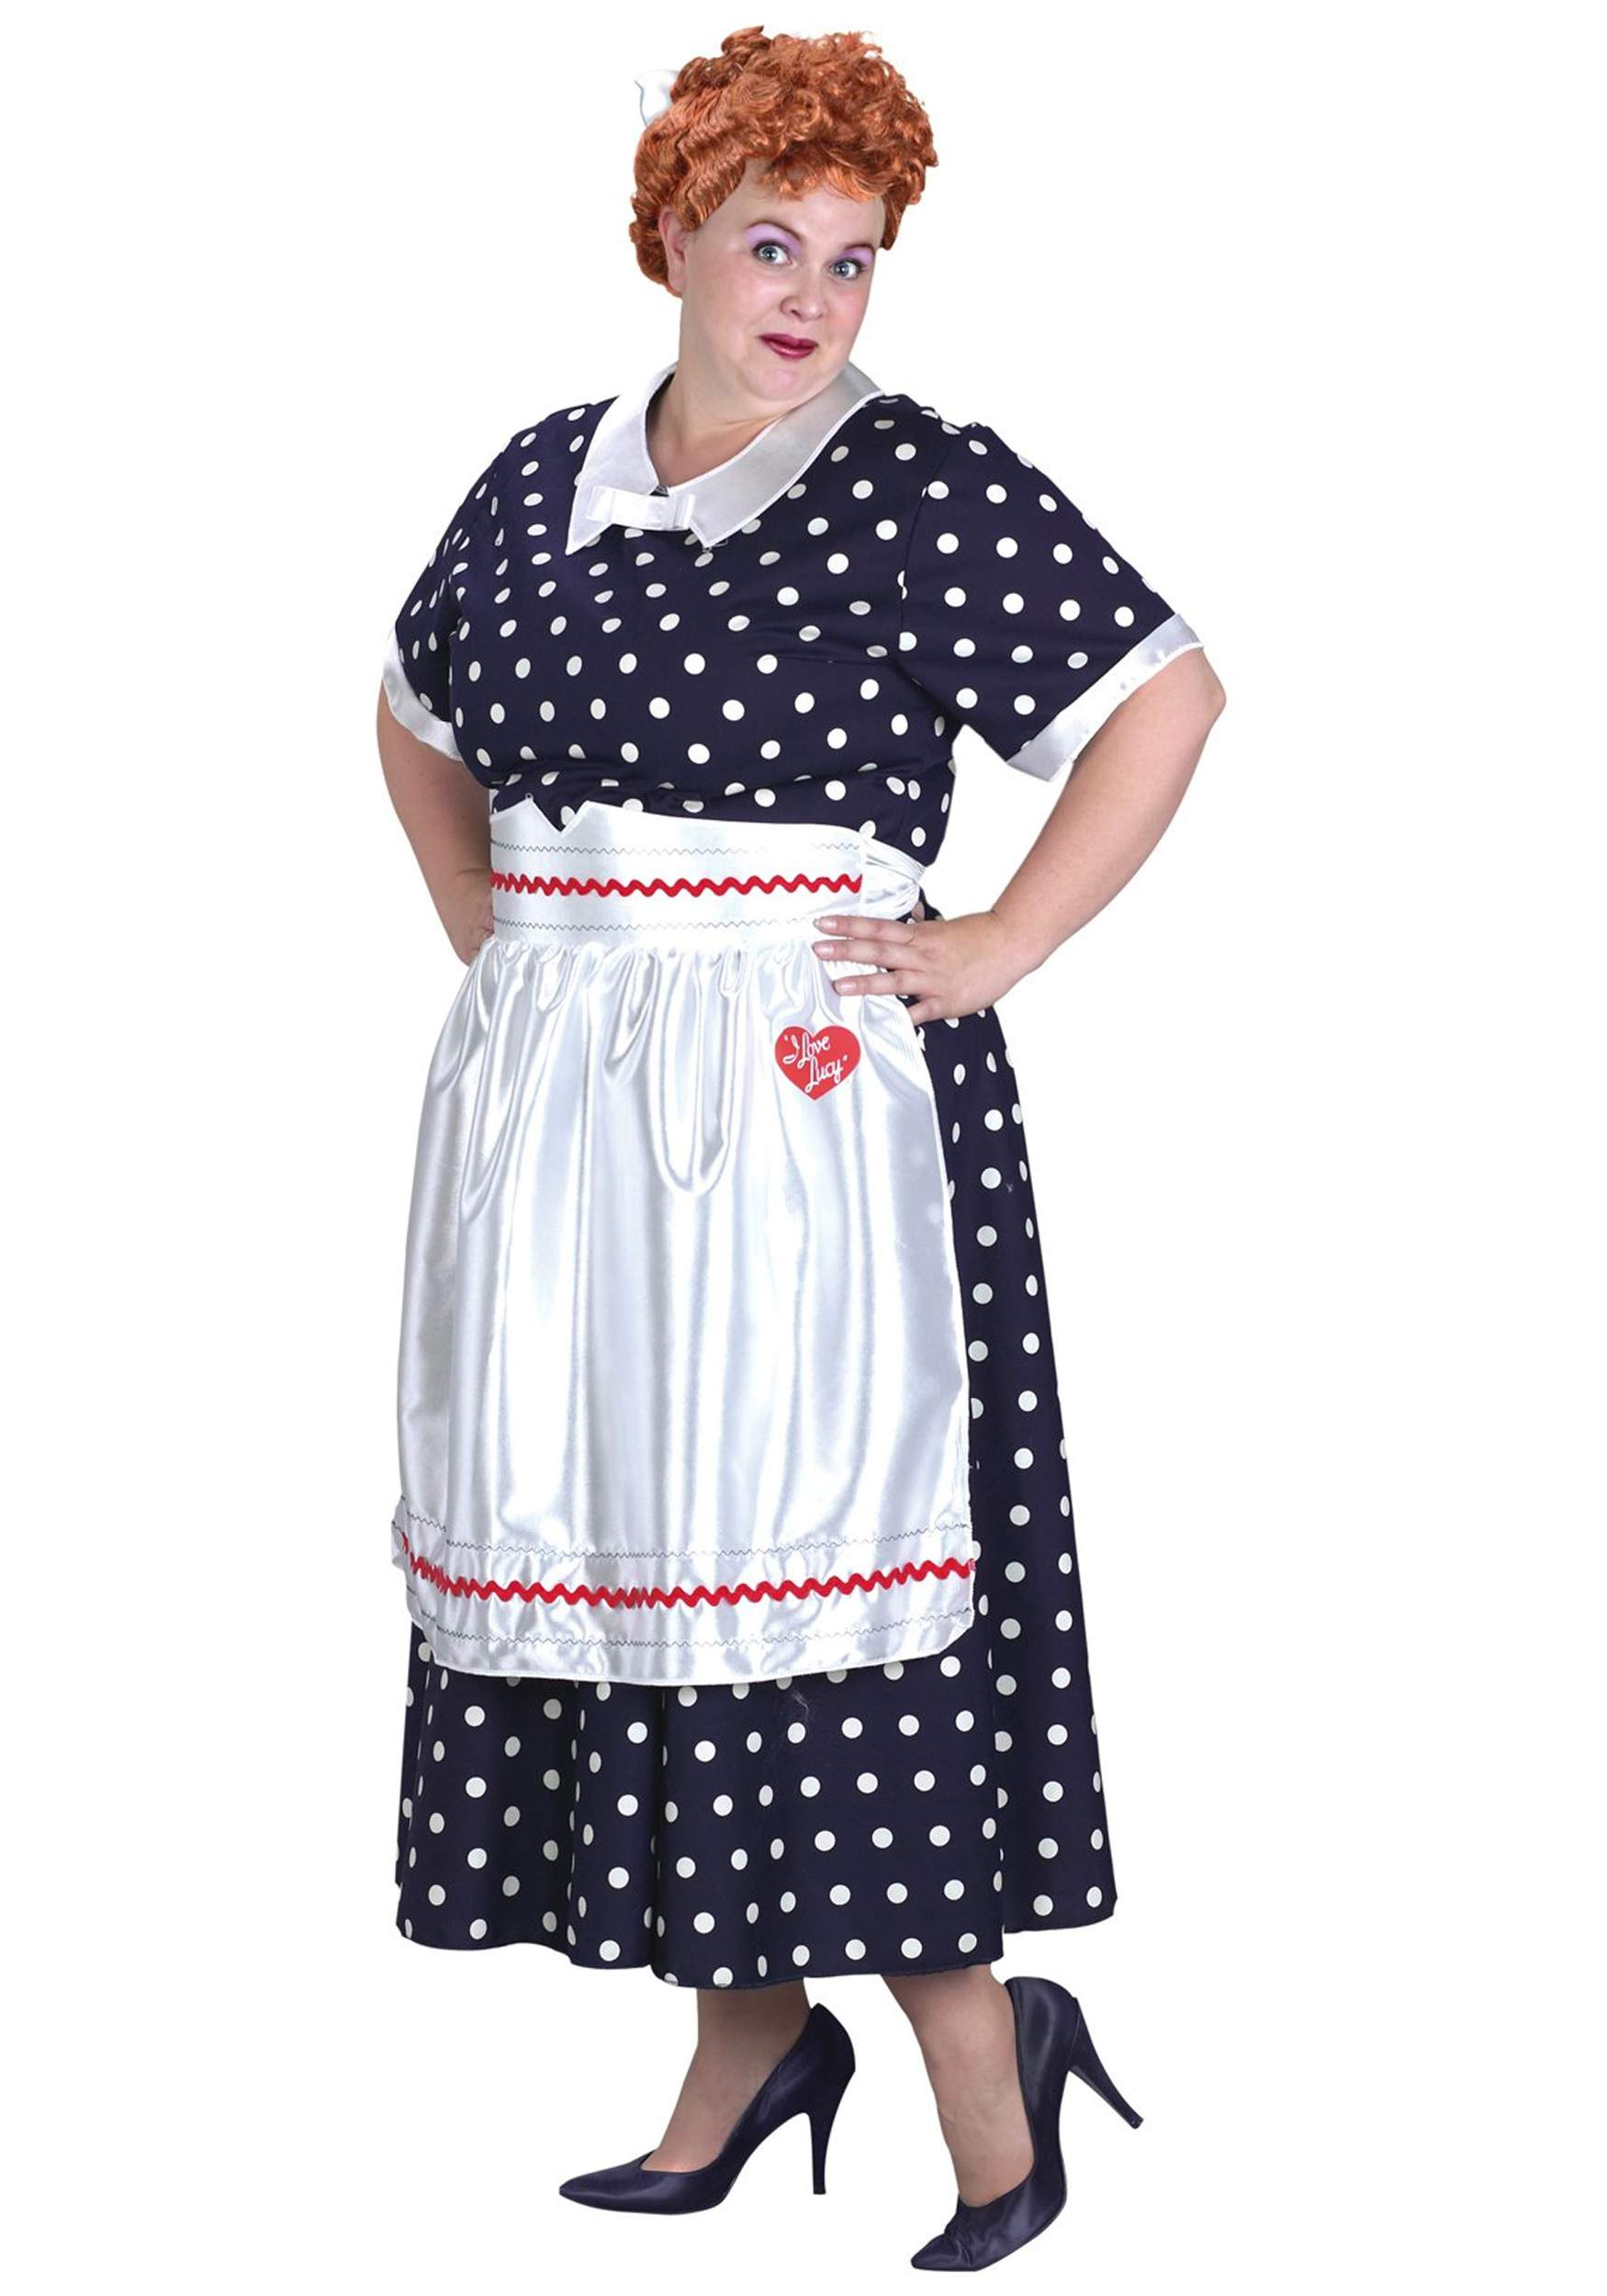 26 of Our Favorite Plus Size Costumes to Score for Halloween!